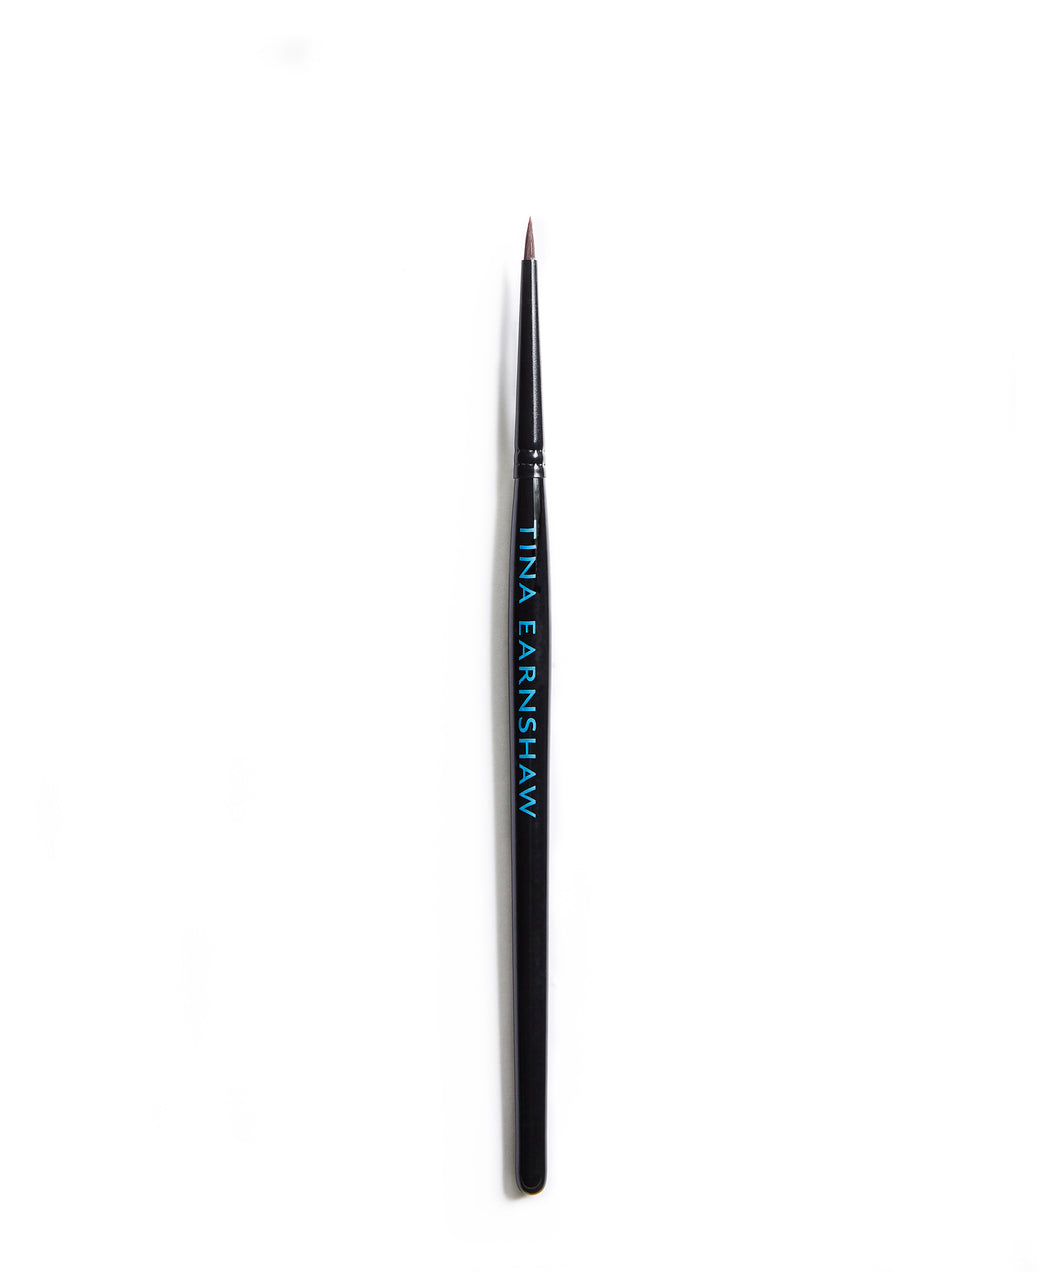 Medium Eyeliner Brush - No7